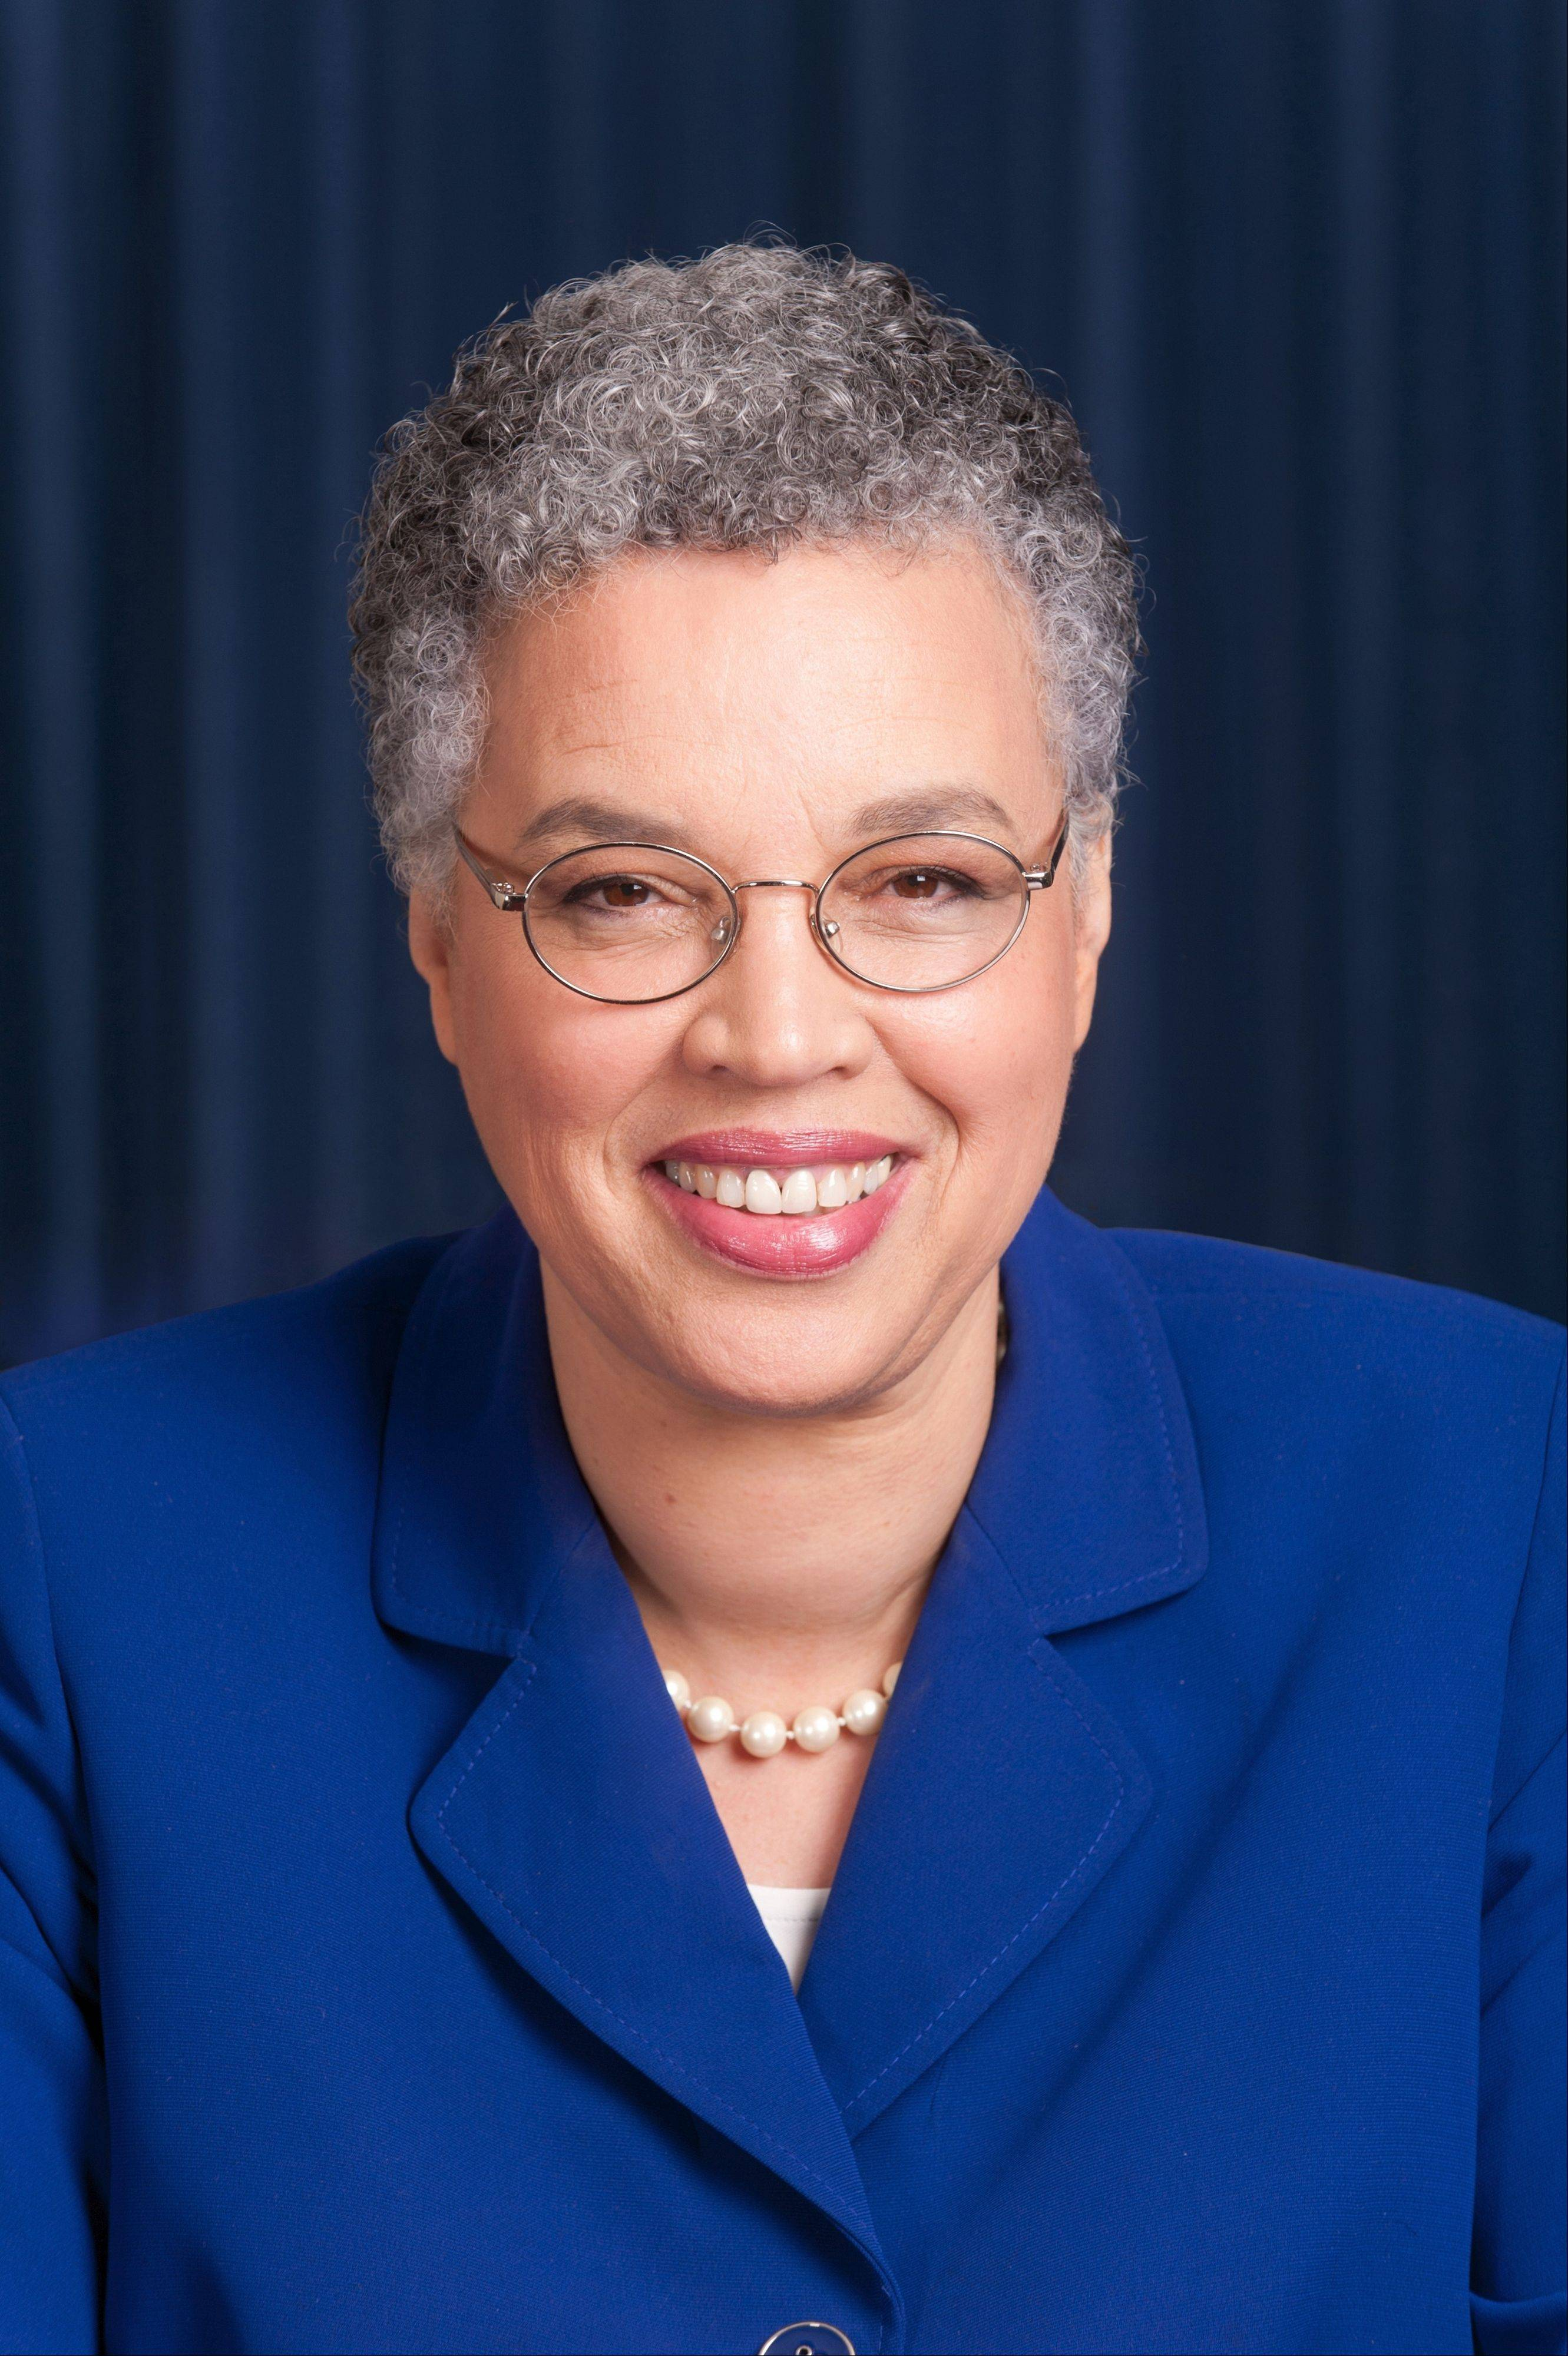 Toni Preckwinkle, Cook County Board President